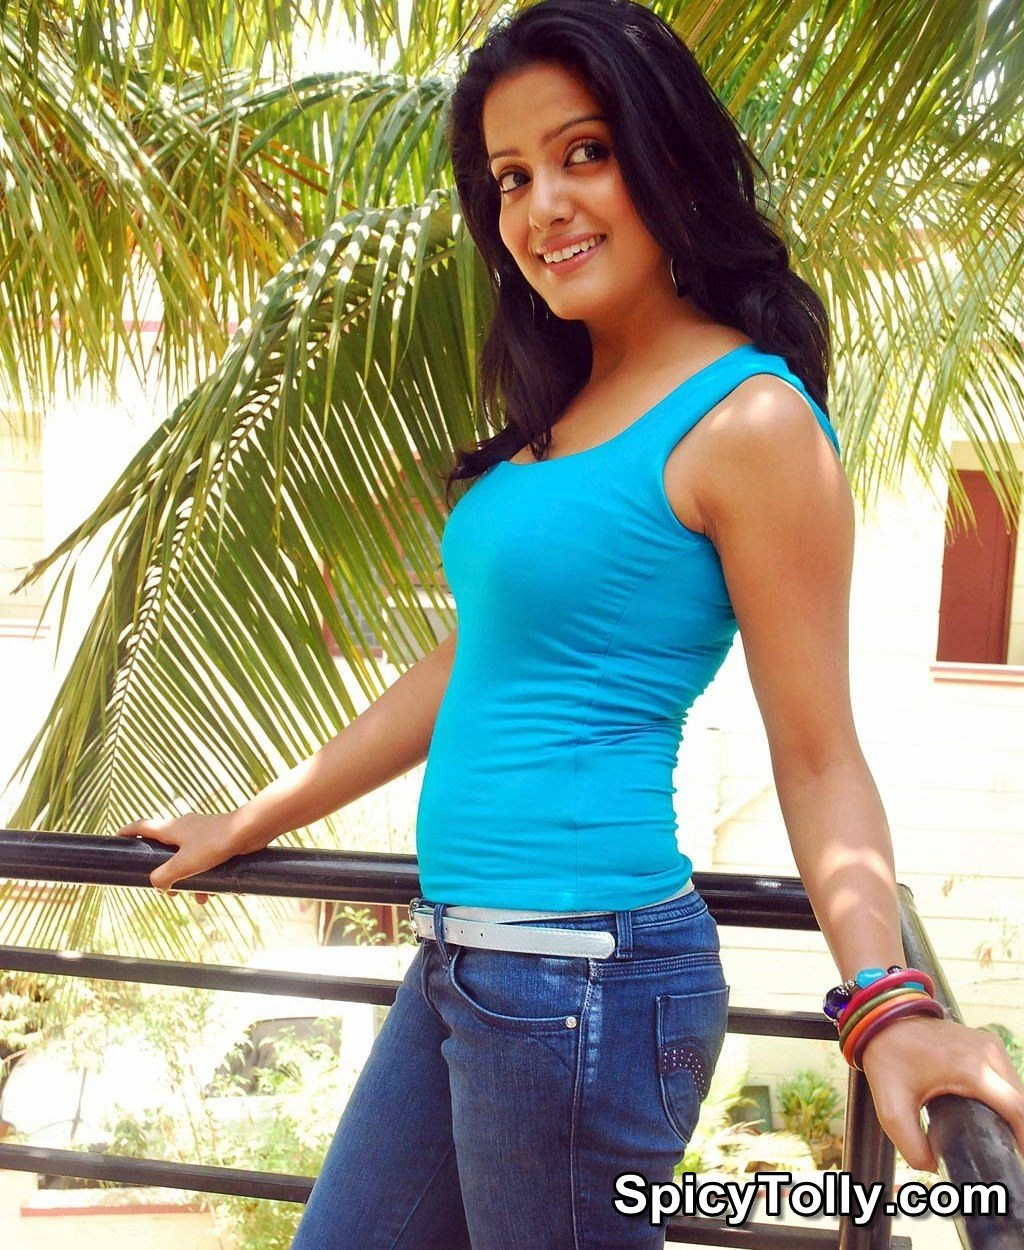 actress tollywood gallery : visakha singh in jeans with blue